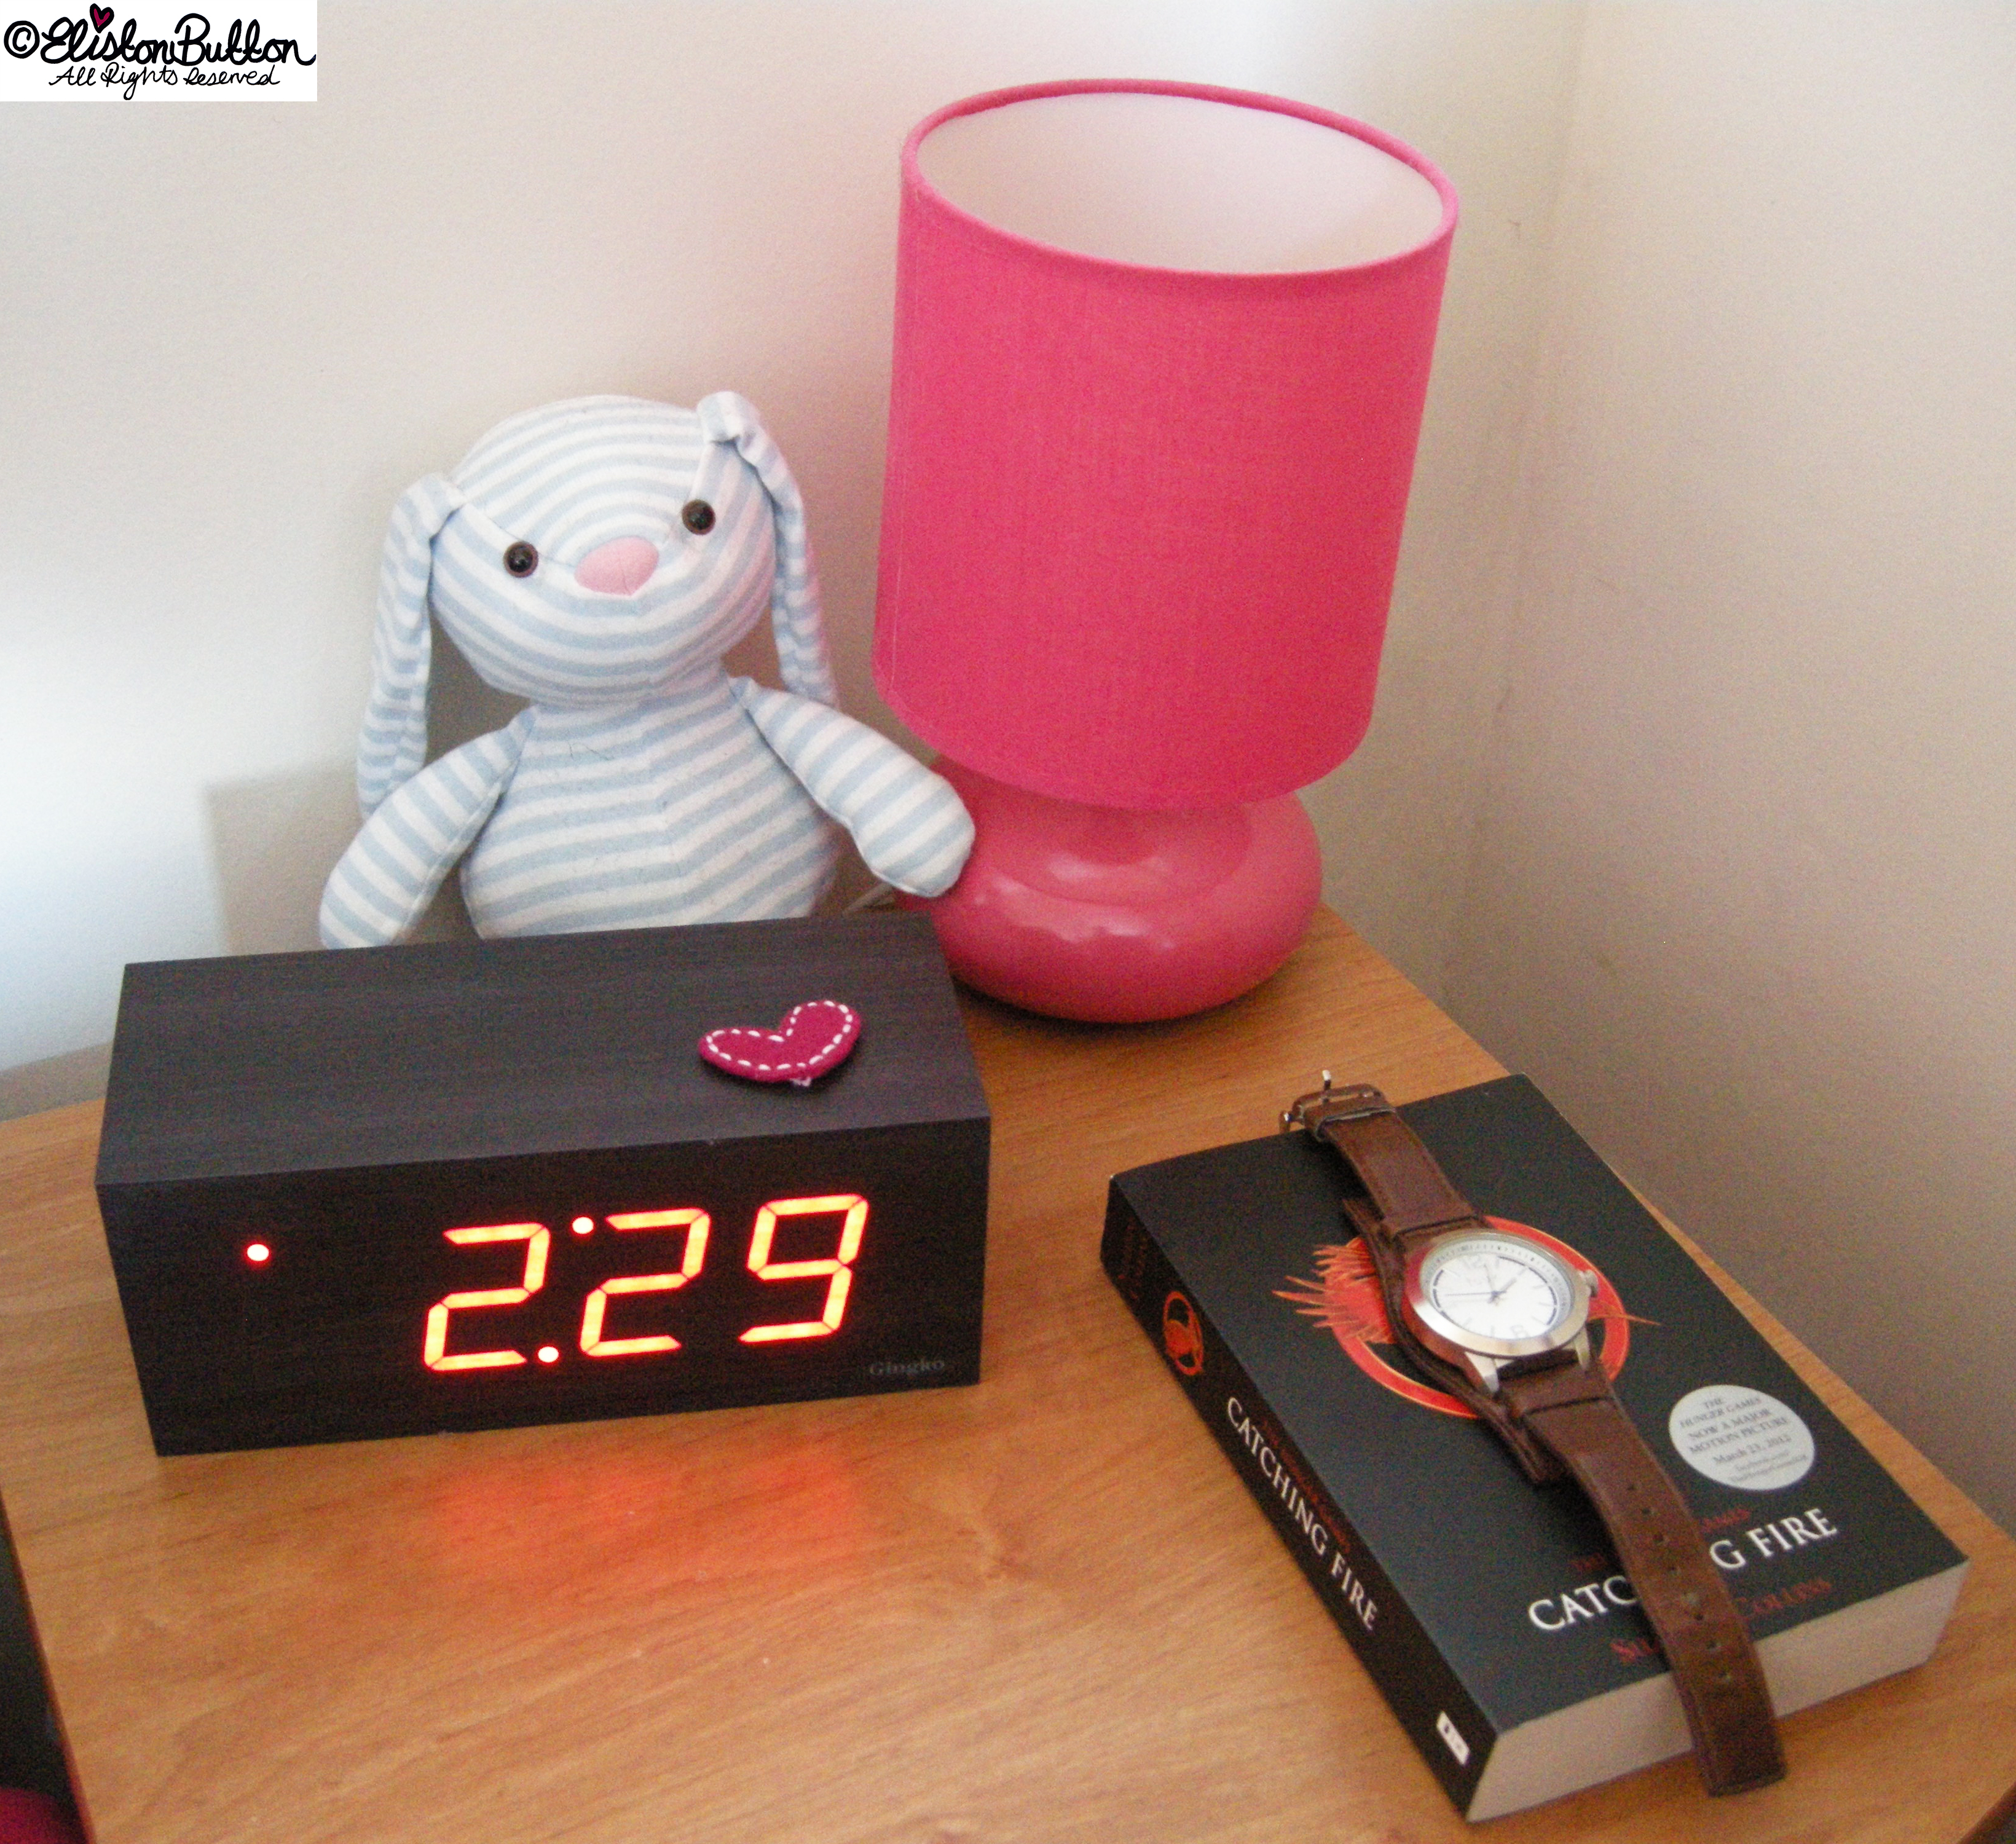 Block Alarm CLock, Lamp and Book - Bedside Table - Workspace Wednesday - Bedroom Makeover at www.elistonbutton.com - Eliston Button - That Crafty Kid – Art, Design, Craft & Adventure.